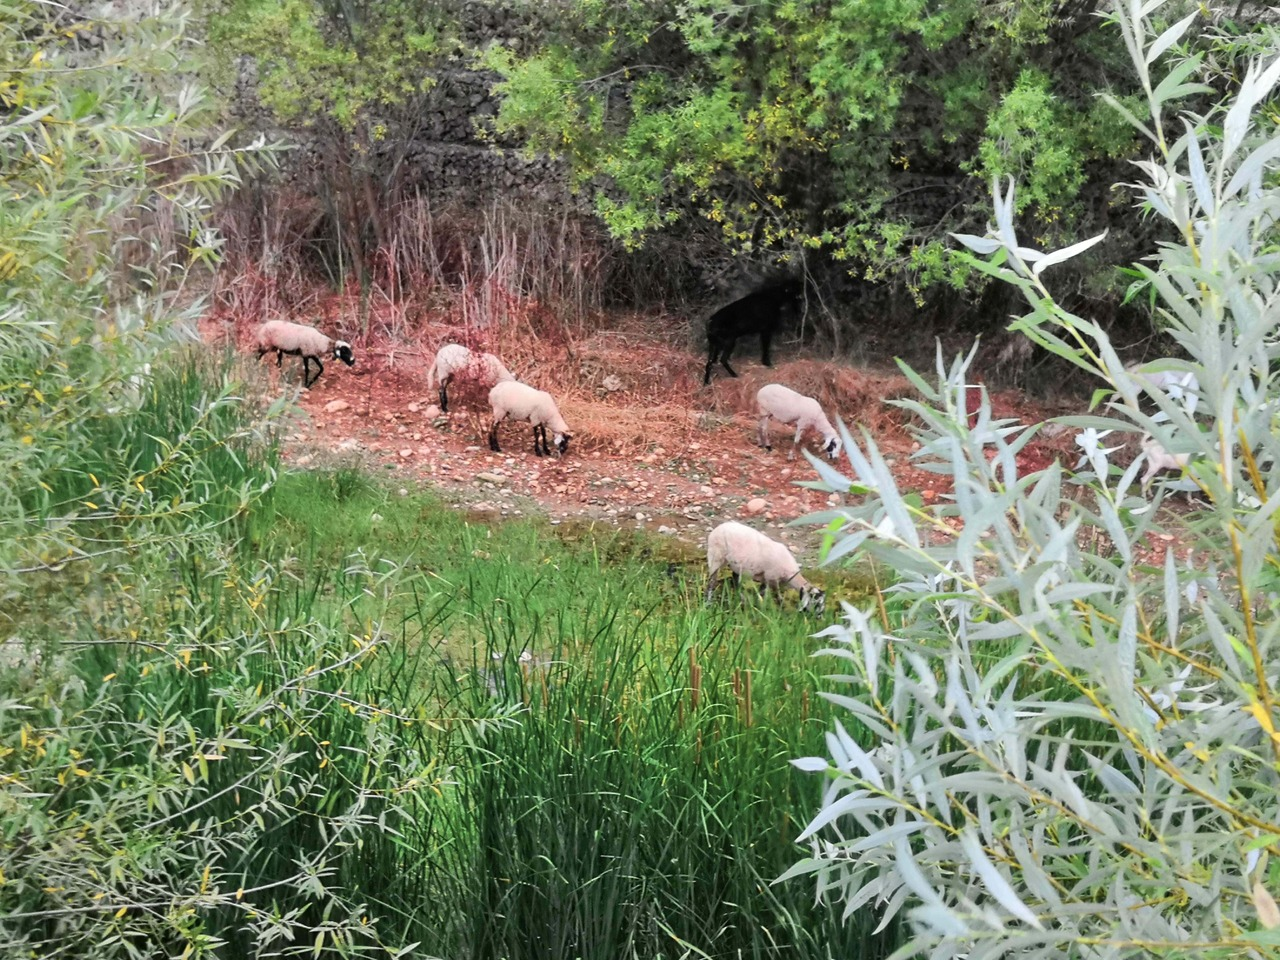 Sheep grazing in a river valley